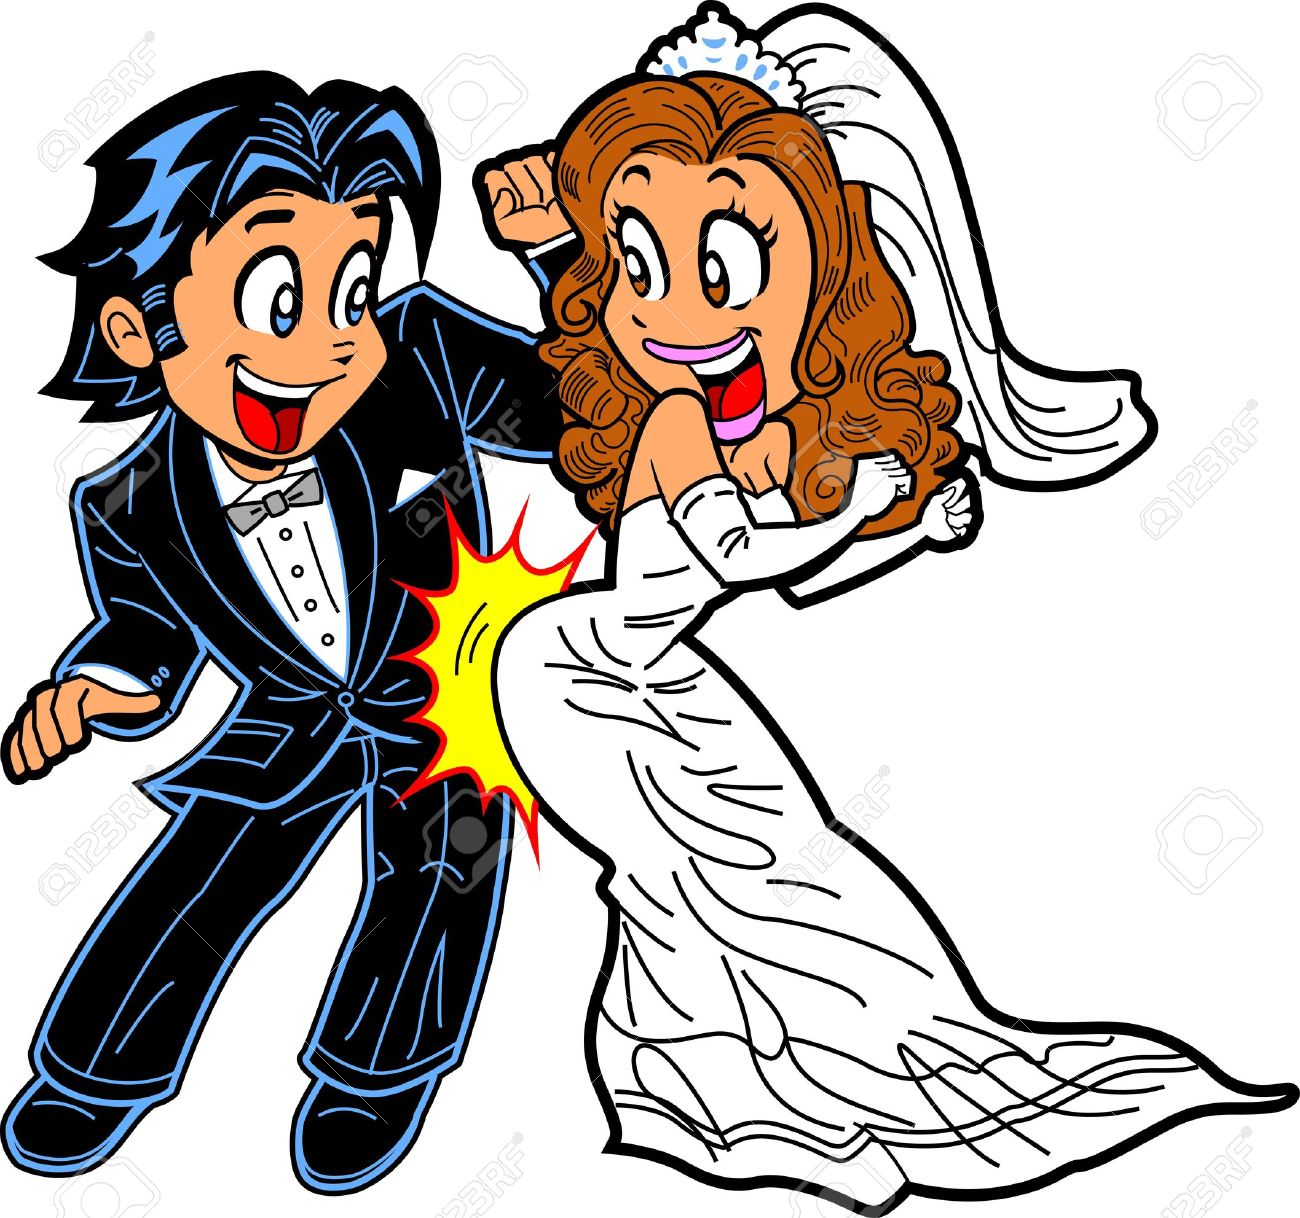 Happy Just Married Couple Doing the Wedding Dance Stock Vector - 20686094